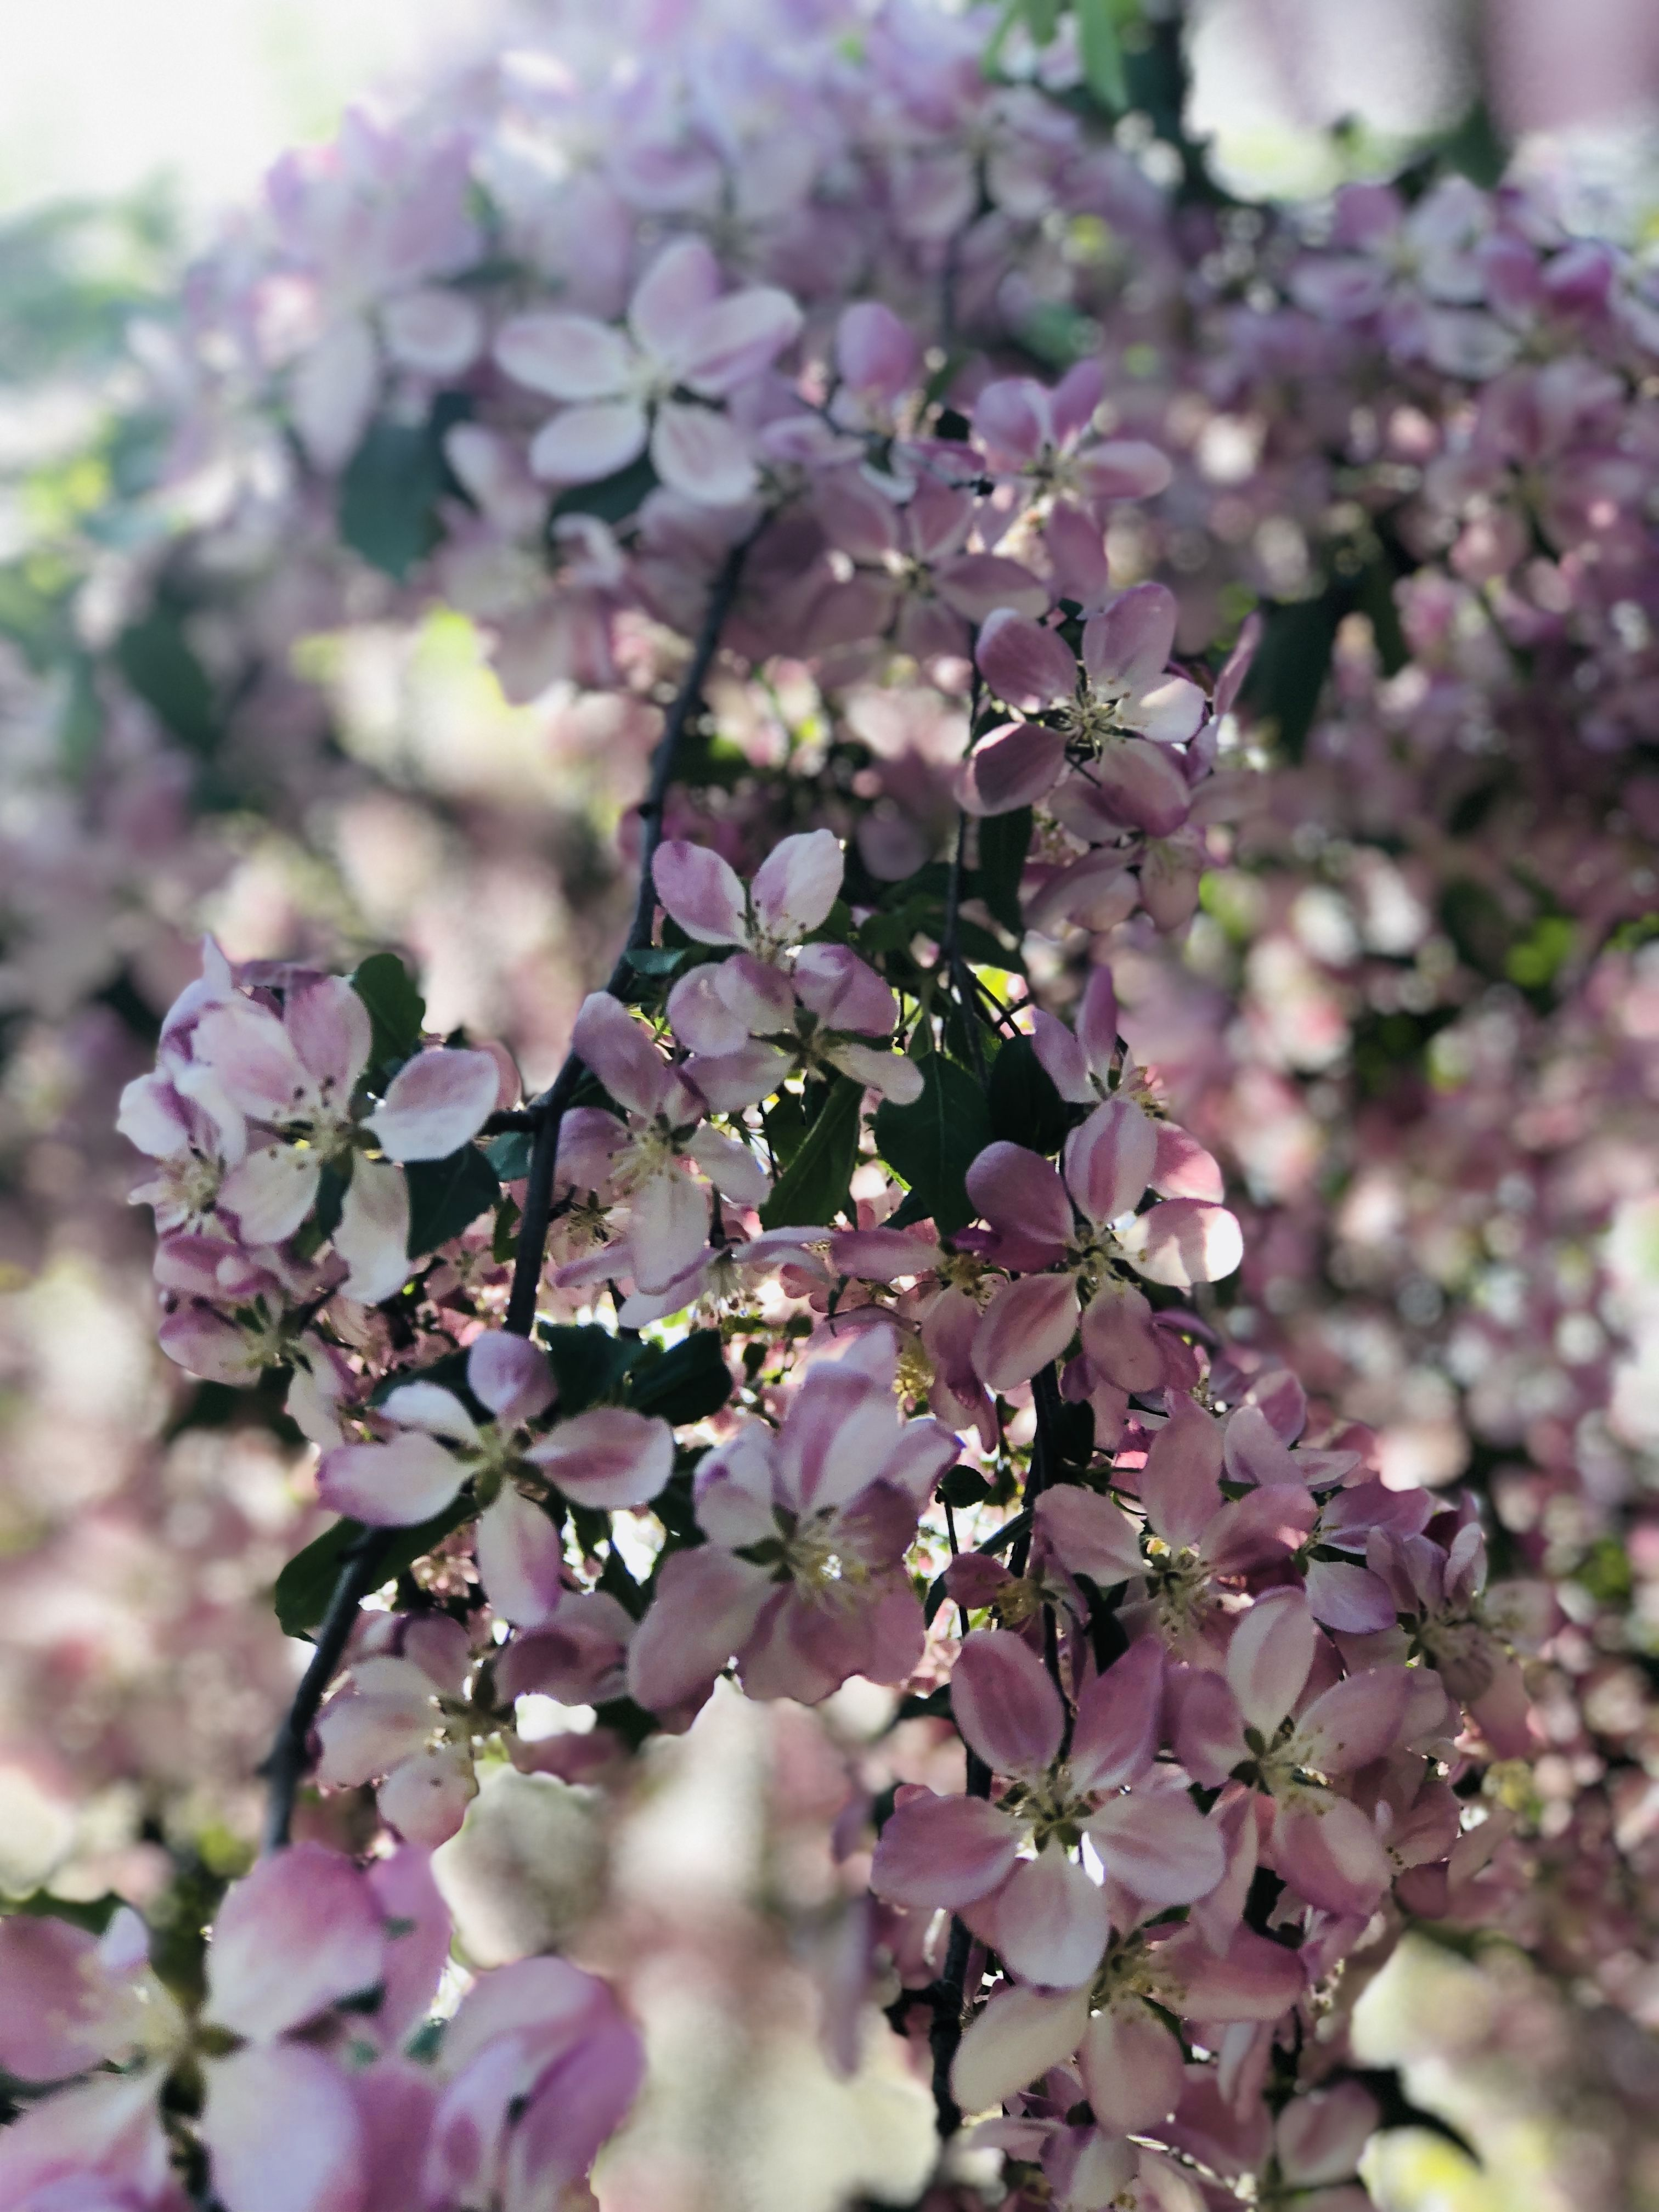 Pink Aesthetic Photography Flowers Spring Cherry Blossoms